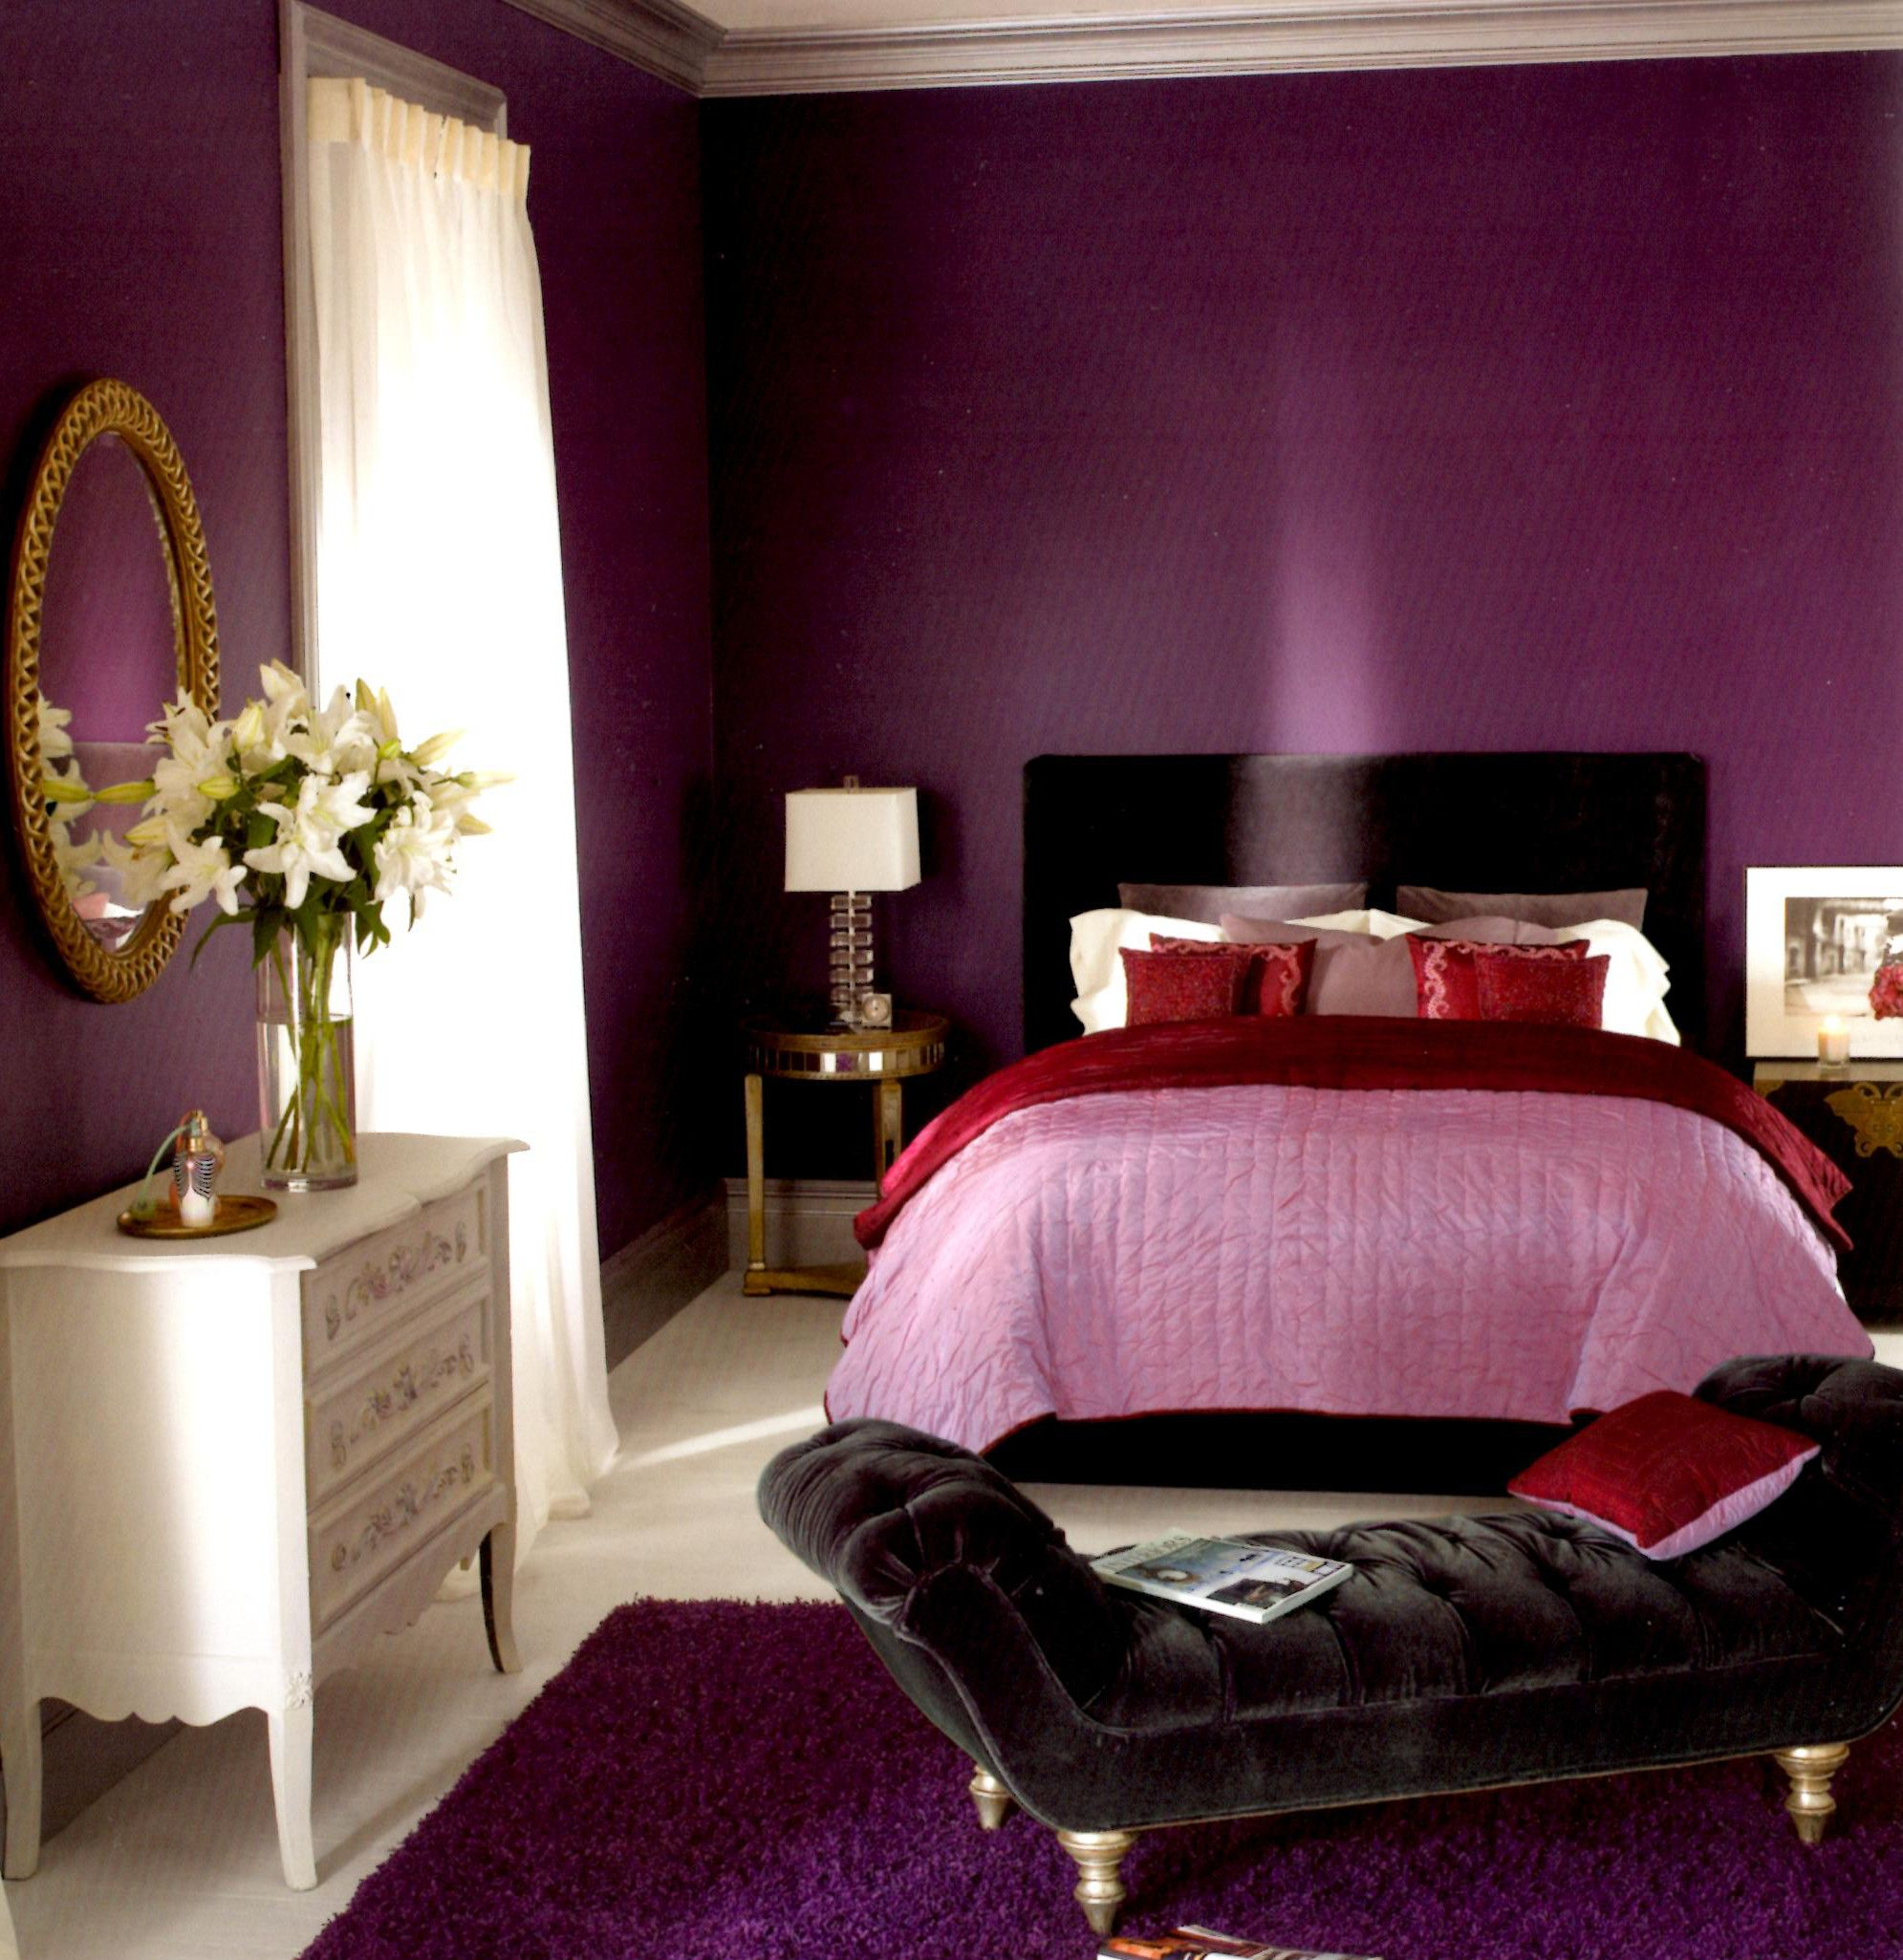 Remarkable purple wall paneling colors as smart bedroom paint ideas in teenage bedroom decor also white